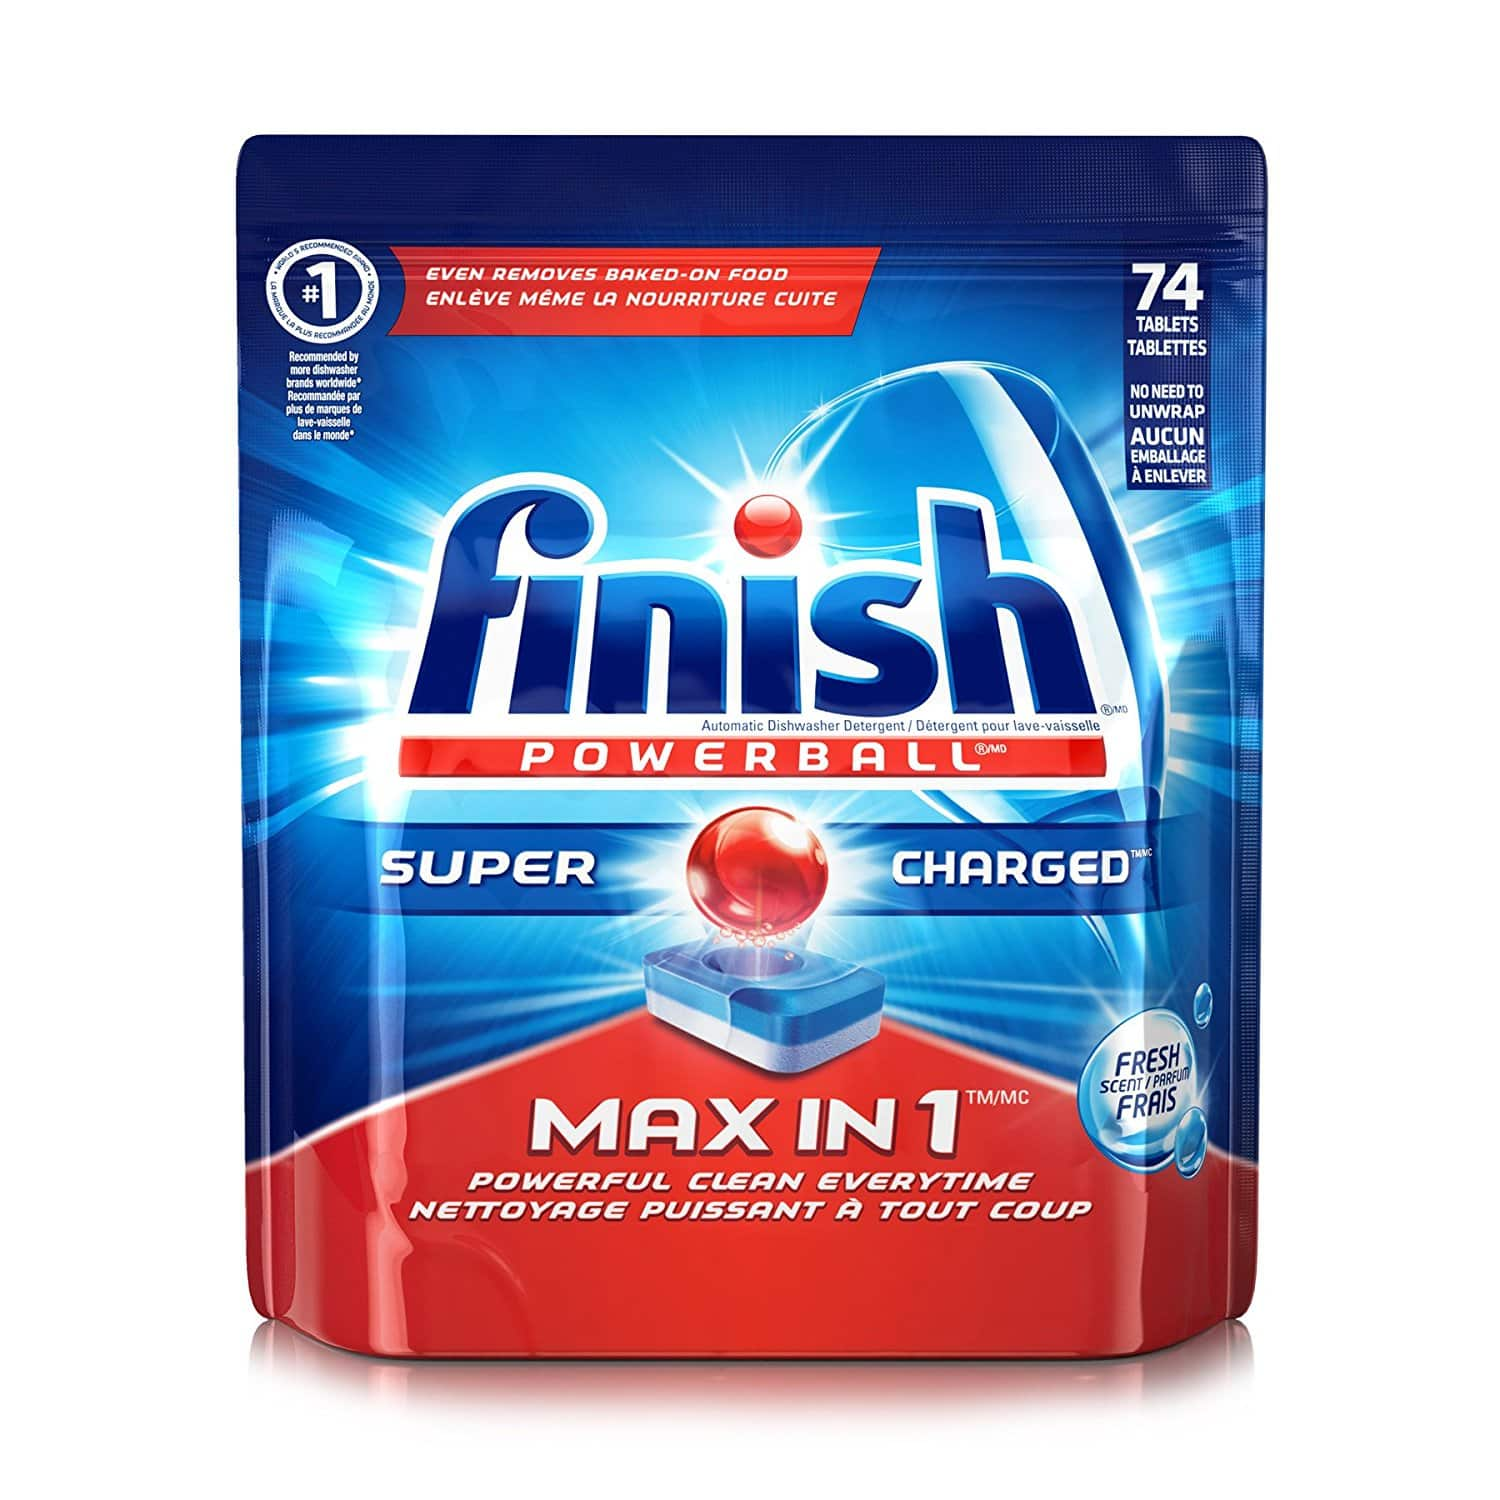 74-Count Finish Max Powerball Super Charged Automatic Dishwasher Detergent (Fresh Scent) $7.33 or Less + Free Shipping Amazon.com